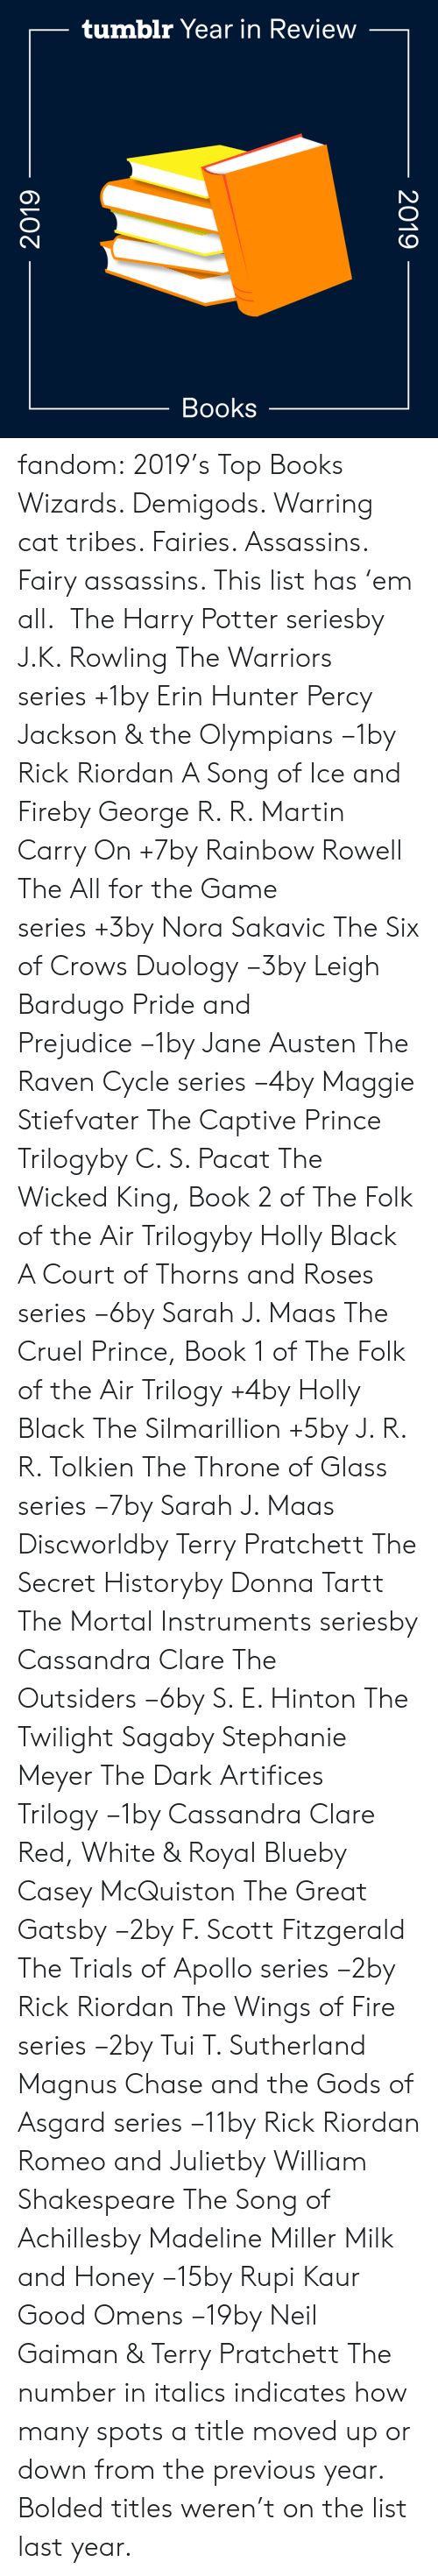 assassins: tumblr Year in Review  Books  2019  2019 fandom:  2019's Top Books  Wizards. Demigods. Warring cat tribes. Fairies. Assassins. Fairy assassins. This list has 'em all.   The Harry Potter seriesby J.K. Rowling  The Warriors series +1by Erin Hunter  Percy Jackson & the Olympians −1by Rick Riordan  A Song of Ice and Fireby George R. R. Martin  Carry On +7by Rainbow Rowell  The All for the Game series +3by Nora Sakavic  The Six of Crows Duology −3by Leigh Bardugo  Pride and Prejudice −1by Jane Austen  The Raven Cycle series −4by Maggie Stiefvater  The Captive Prince Trilogyby C. S. Pacat  The Wicked King, Book 2 of The Folk of the Air Trilogyby Holly Black  A Court of Thorns and Roses series −6by Sarah J. Maas  The Cruel Prince, Book 1 of The Folk of the Air Trilogy +4by Holly Black  The Silmarillion +5by J. R. R. Tolkien  The Throne of Glass series −7by Sarah J. Maas  Discworldby Terry Pratchett  The Secret Historyby Donna Tartt  The Mortal Instruments seriesby Cassandra Clare  The Outsiders −6by S. E. Hinton  The Twilight Sagaby Stephanie Meyer  The Dark Artifices Trilogy −1by Cassandra Clare  Red, White & Royal Blueby Casey McQuiston  The Great Gatsby −2by F. Scott Fitzgerald  The Trials of Apollo series −2by Rick Riordan  The Wings of Fire series −2by Tui T. Sutherland  Magnus Chase and the Gods of Asgard series −11by Rick Riordan  Romeo and Julietby William Shakespeare  The Song of Achillesby Madeline Miller  Milk and Honey −15by Rupi Kaur  Good Omens −19by Neil Gaiman & Terry Pratchett The number in italics indicates how many spots a title moved up or down from the previous year. Bolded titles weren't on the list last year.